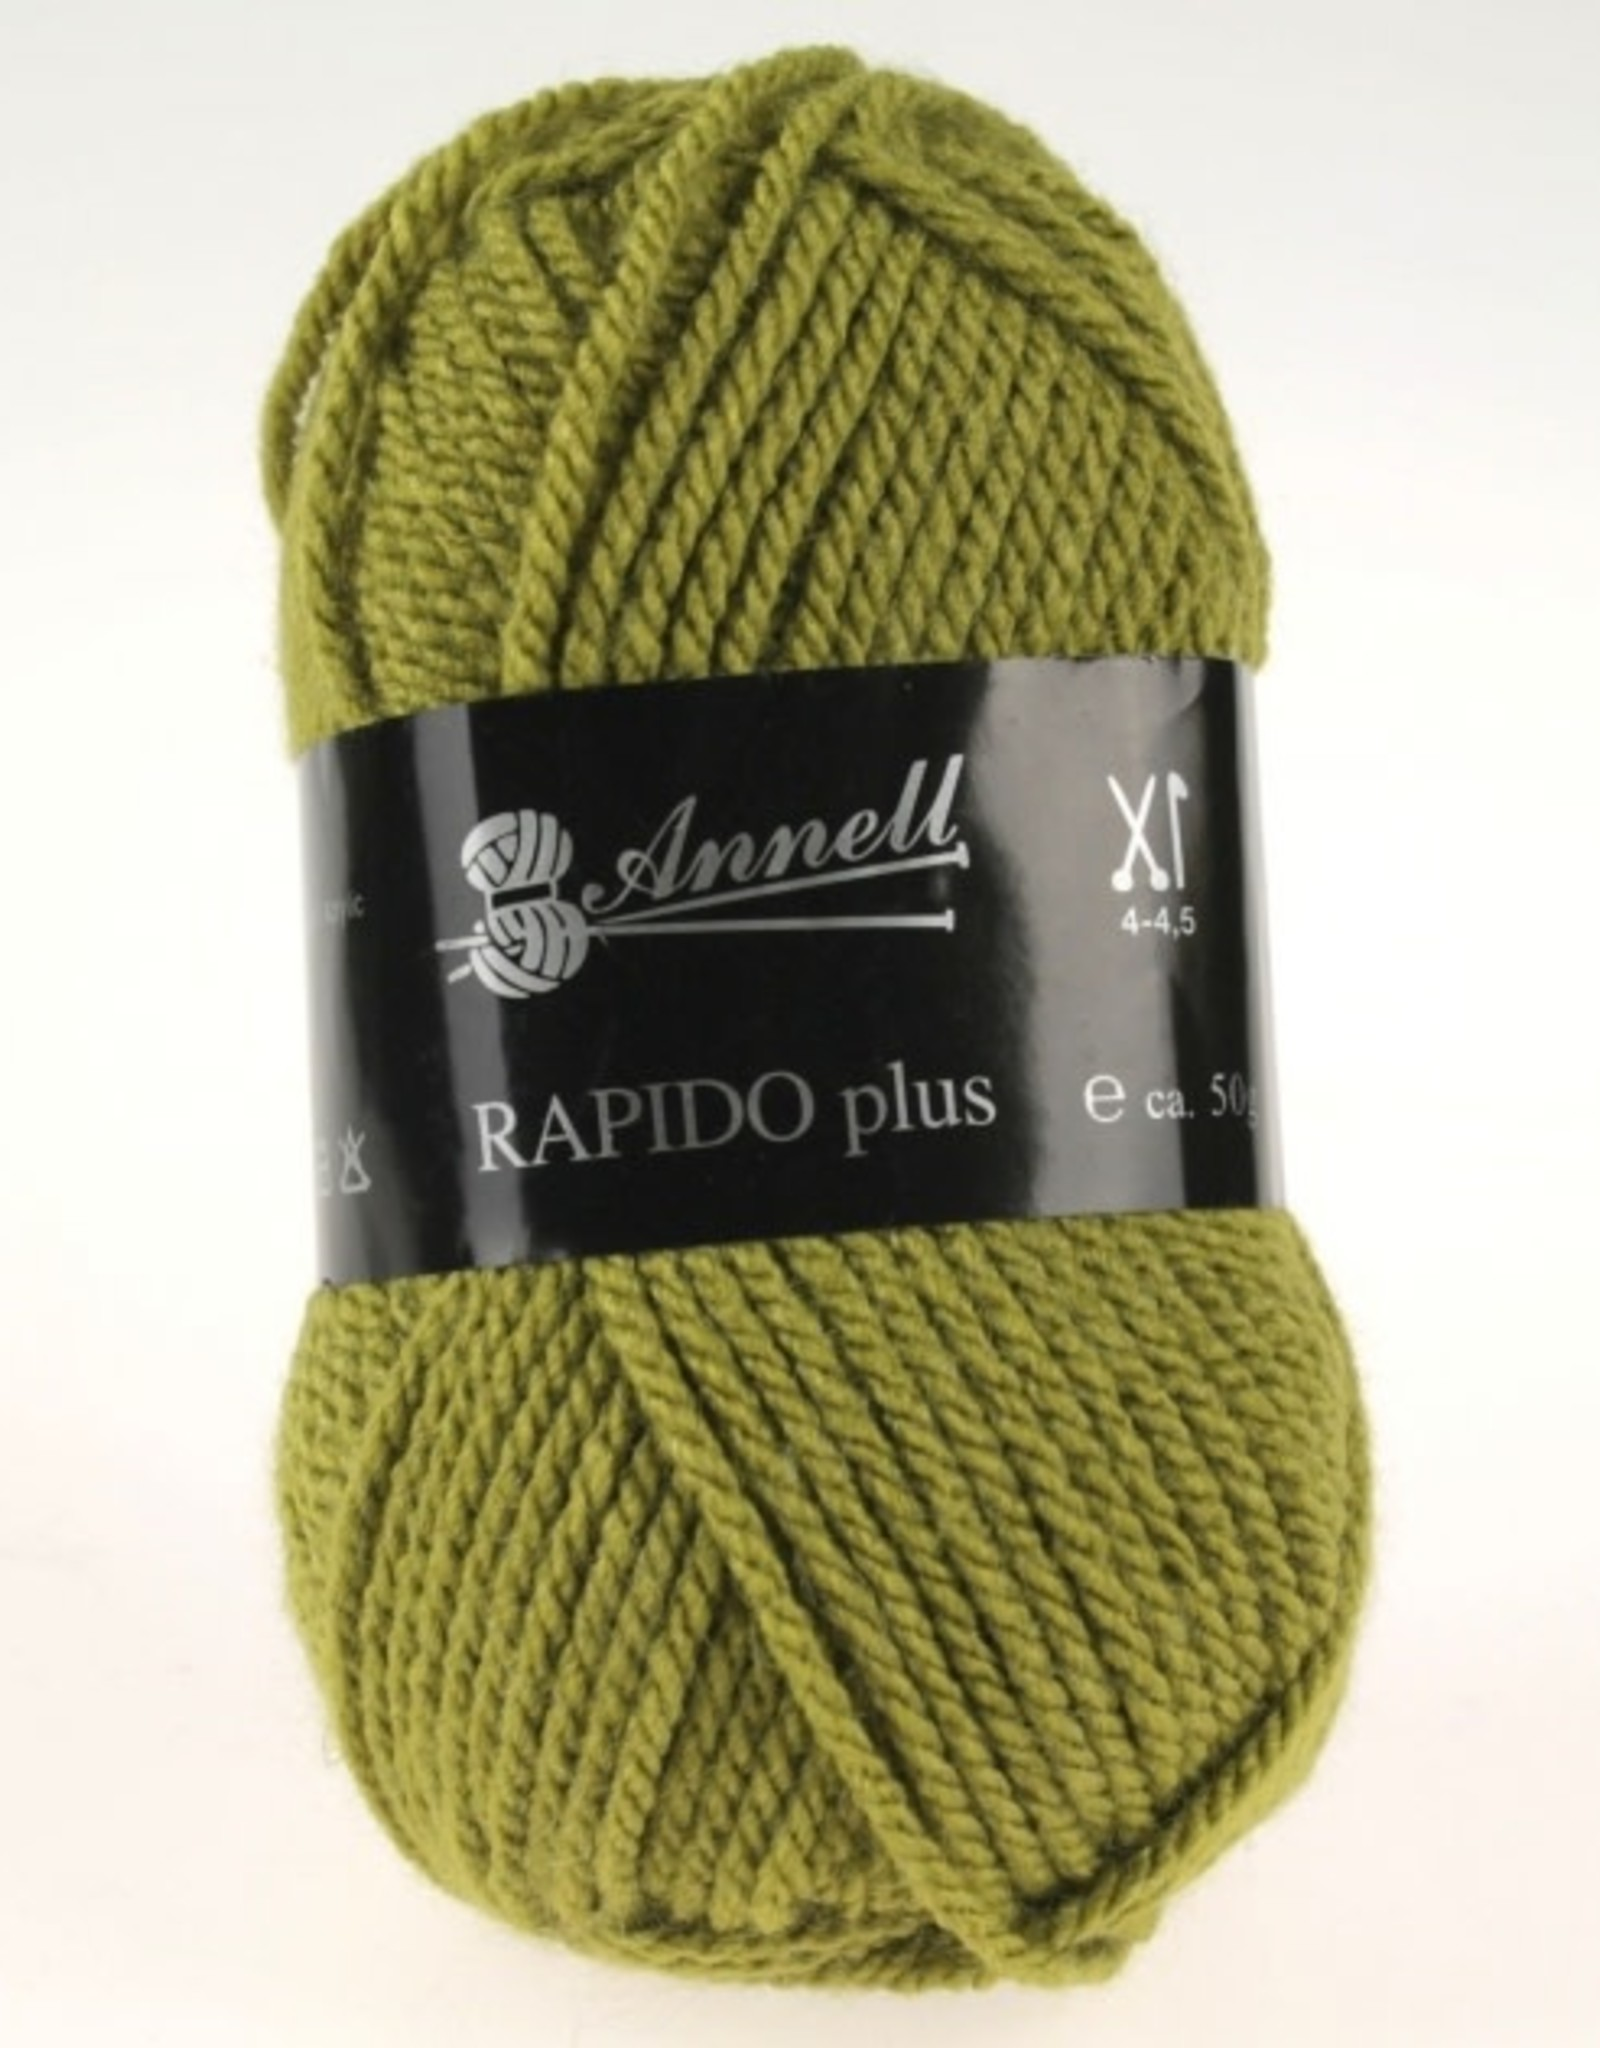 Annell Annell rapido plus 9219